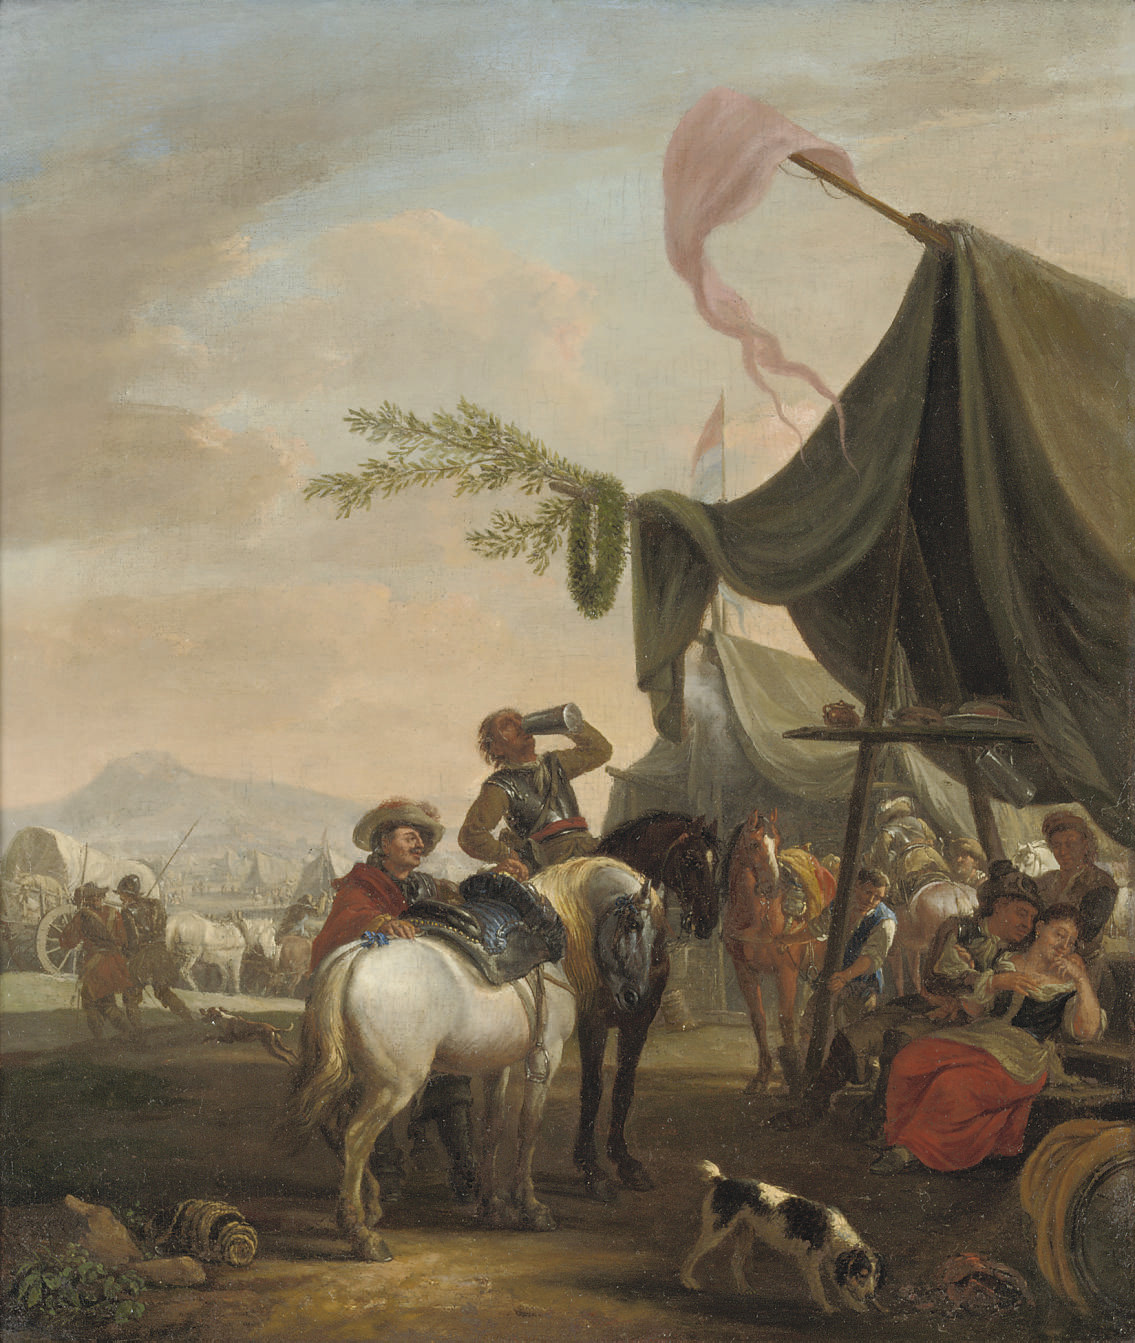 Soldiers on horseback near an encampment